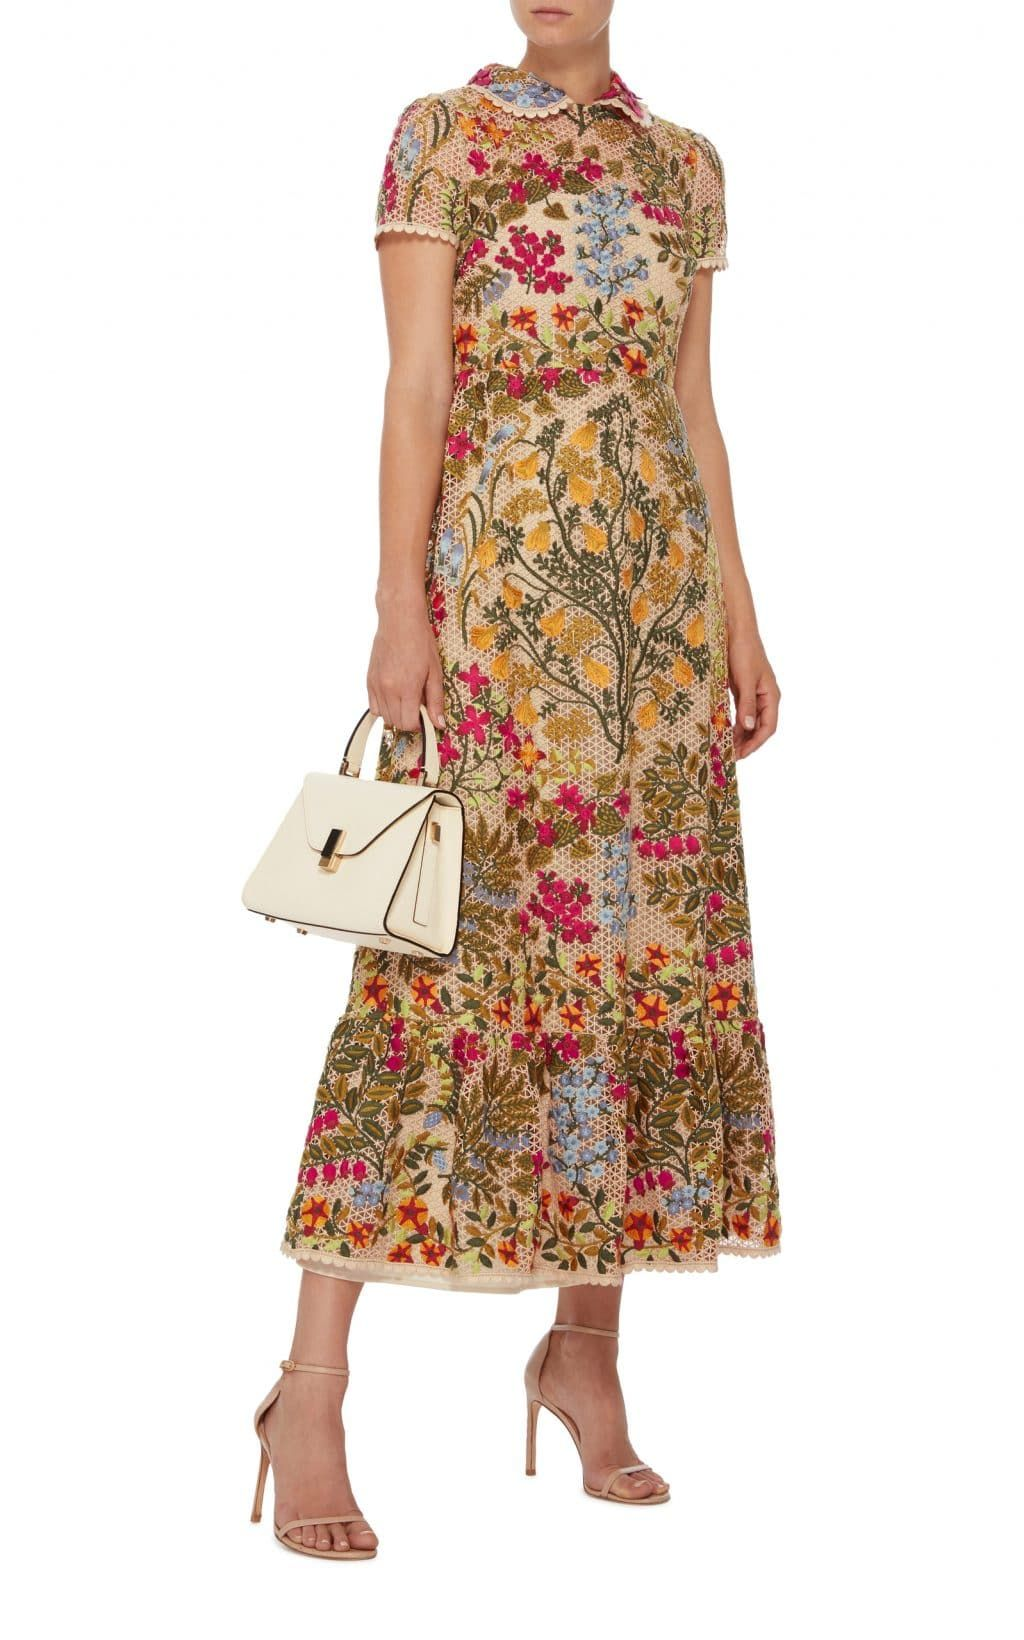 5cf6d117a78 RED VALENTINO Floral Embroidered Macramé Beige Dress - We Select Dresses